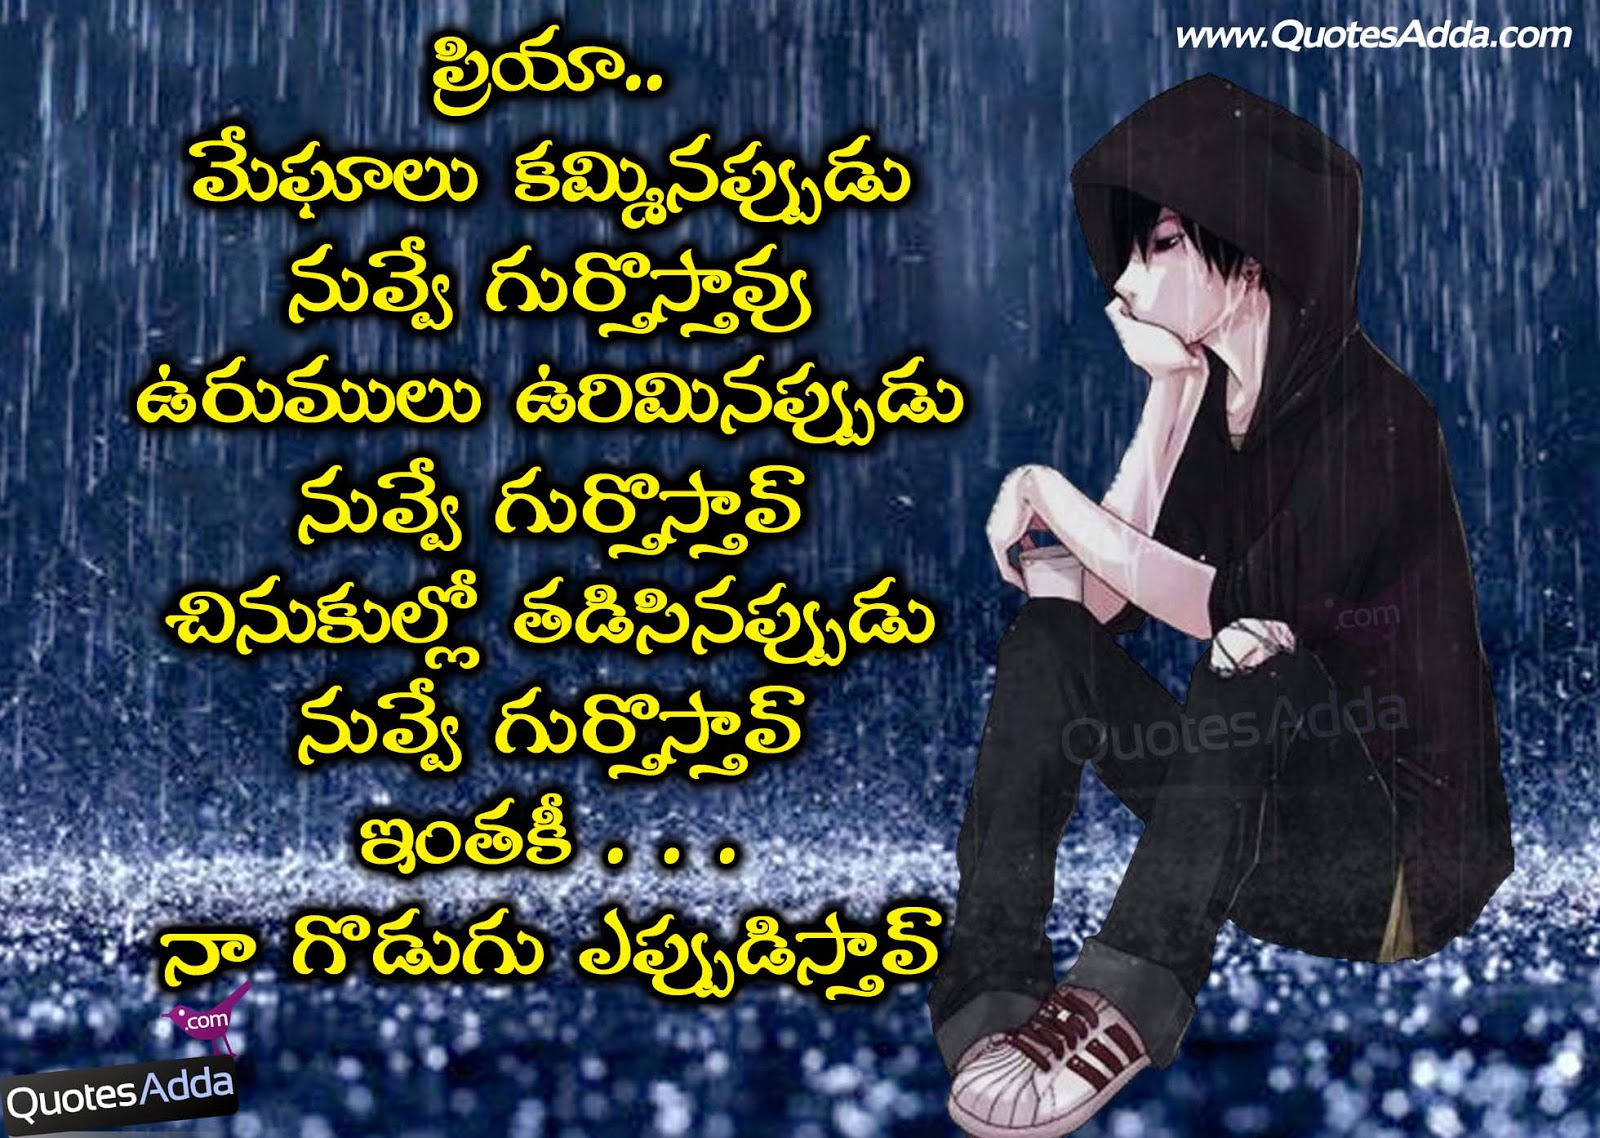 Funny Quotes About Love In Telugu : Funny Quotes On Girls In Telugu Friendship quotes - tamil love